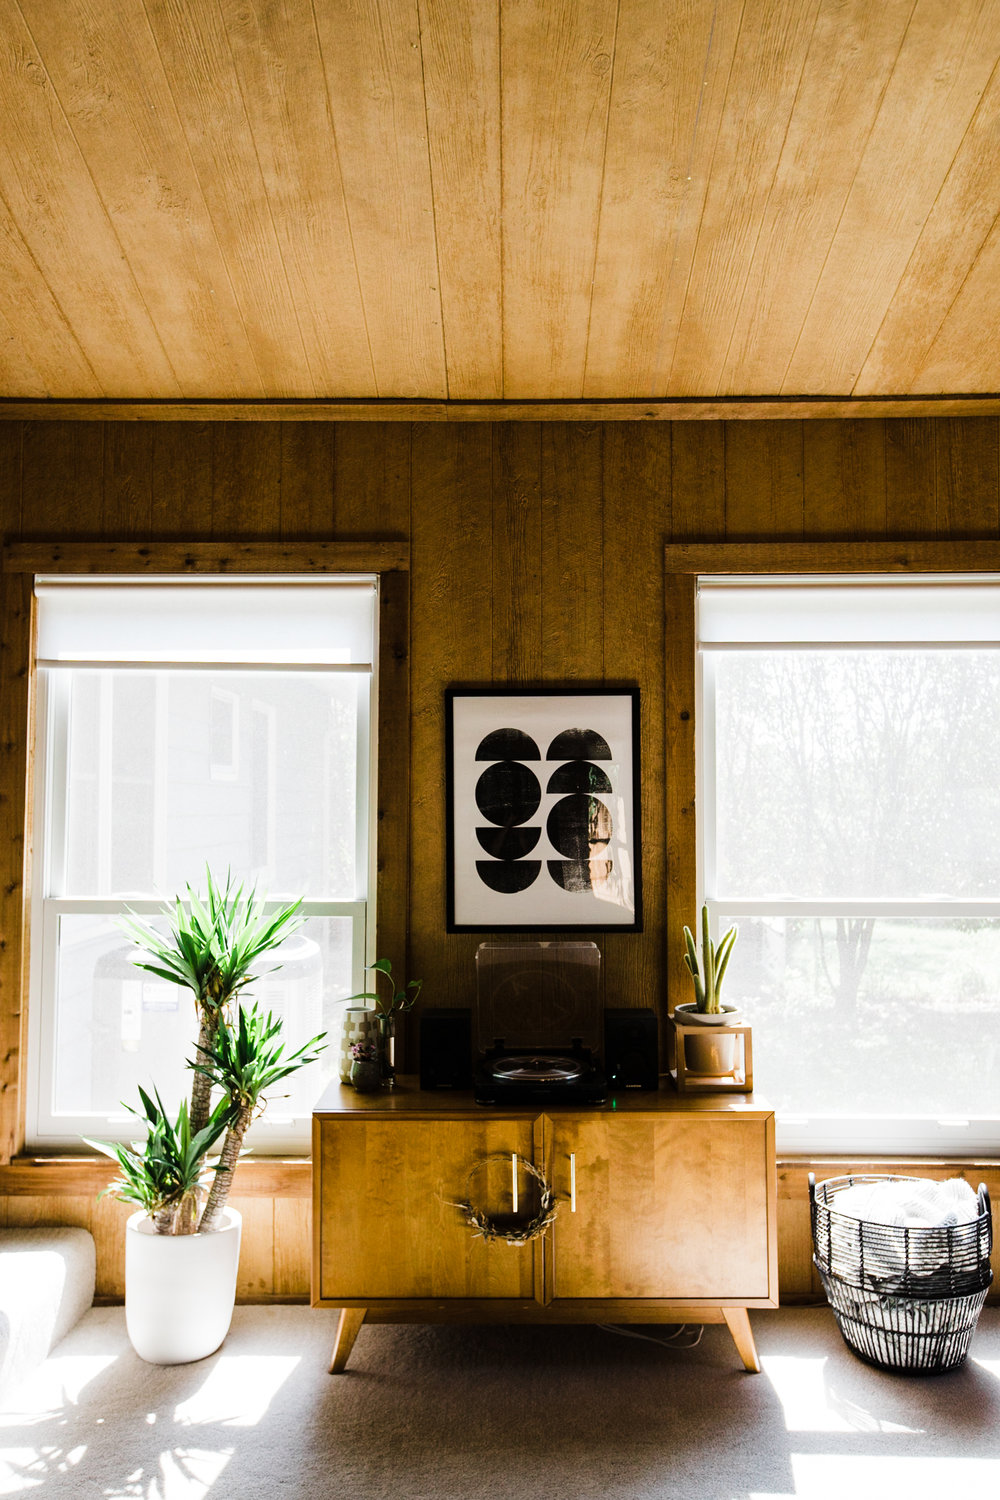 We took photos of our employee Holly's home earlier this week! It is gorgeous and so exciting! We can't wait to share her home tour with you soon! Also... see this for some wood paneling inspiration.